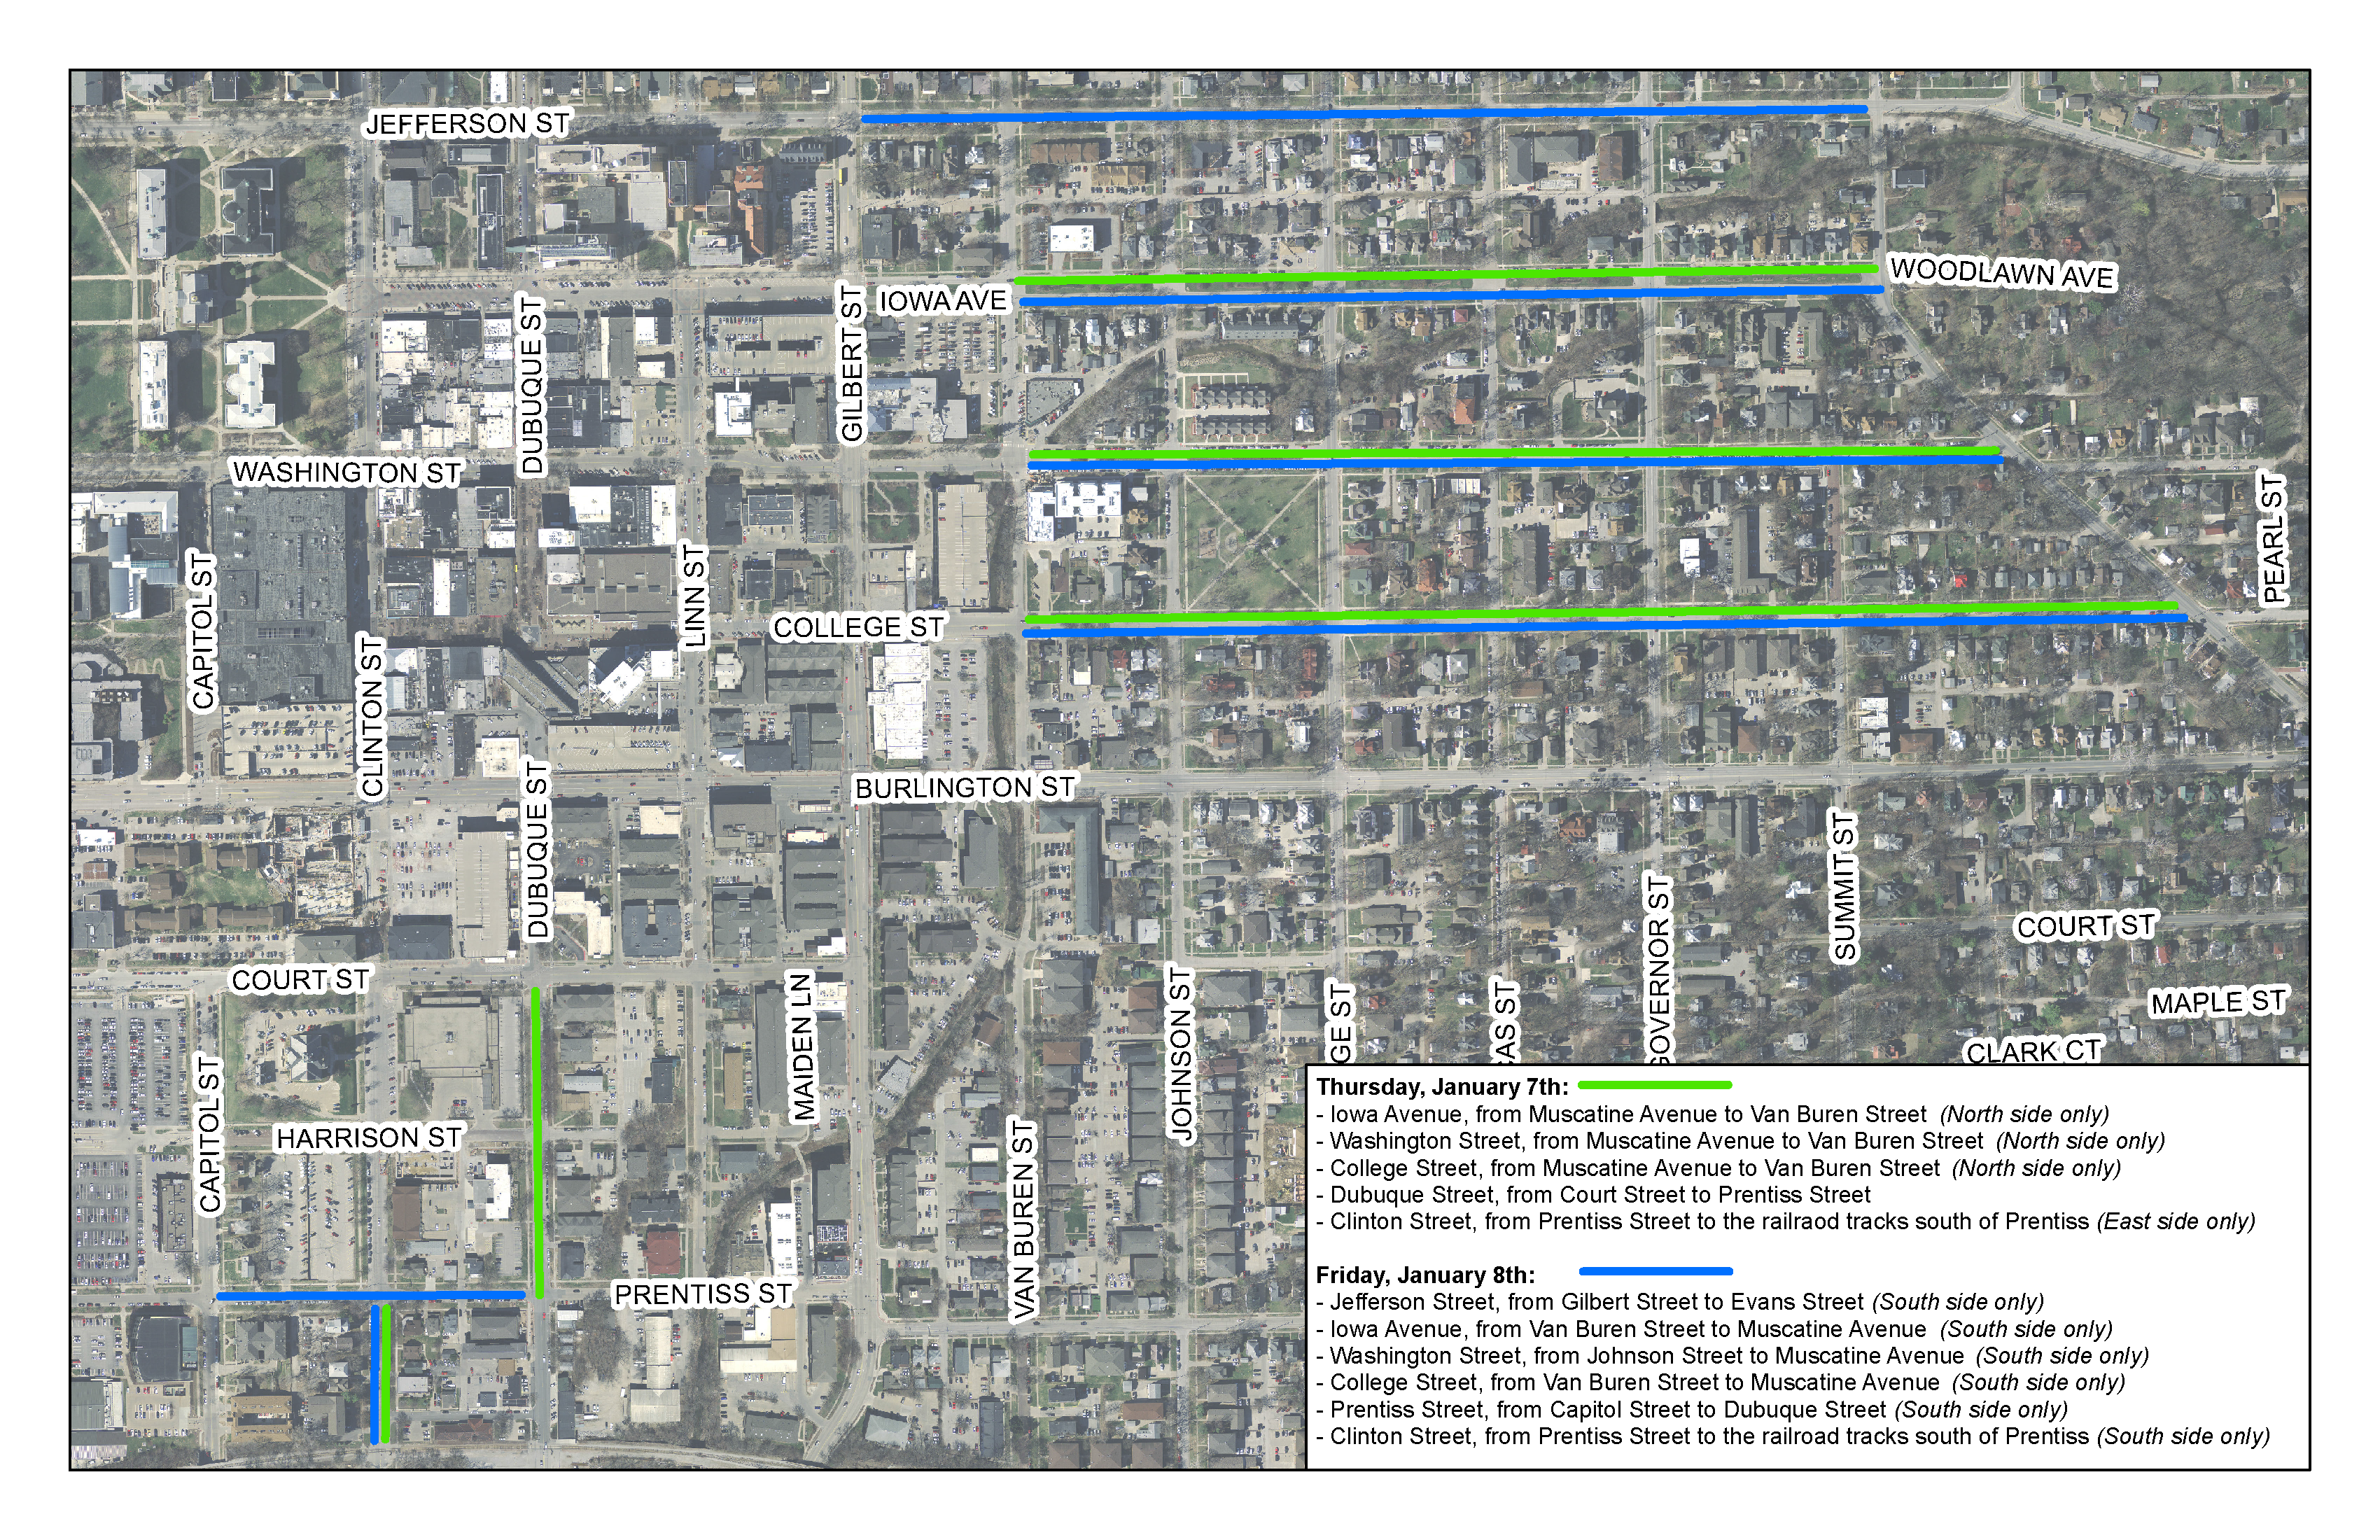 Map of streets that will be towed on Jan. 7 and Jan. 8, 2021.